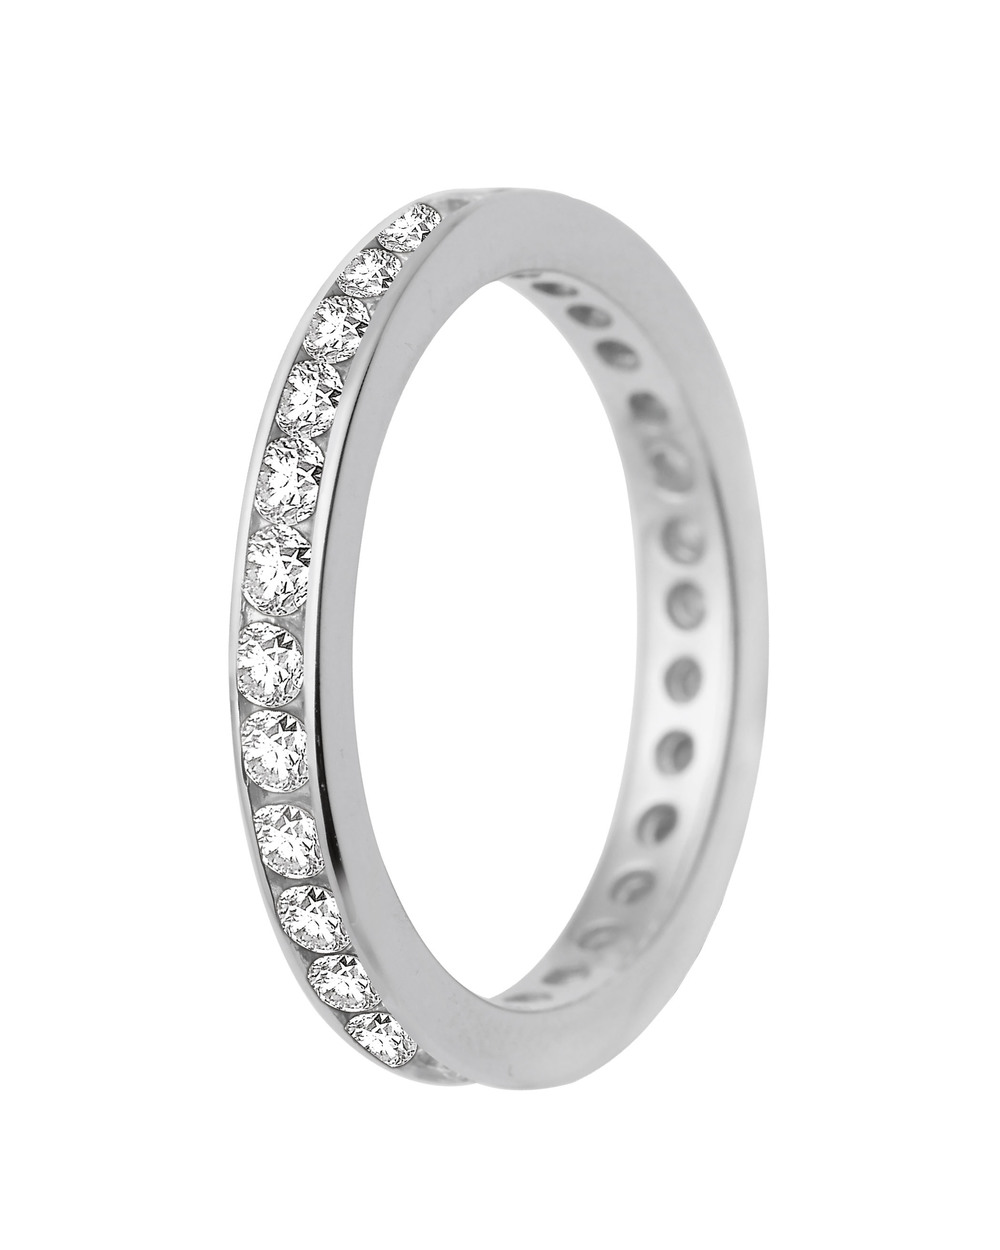 Anna Malou, Ring aus 925 Sterling Silber  58